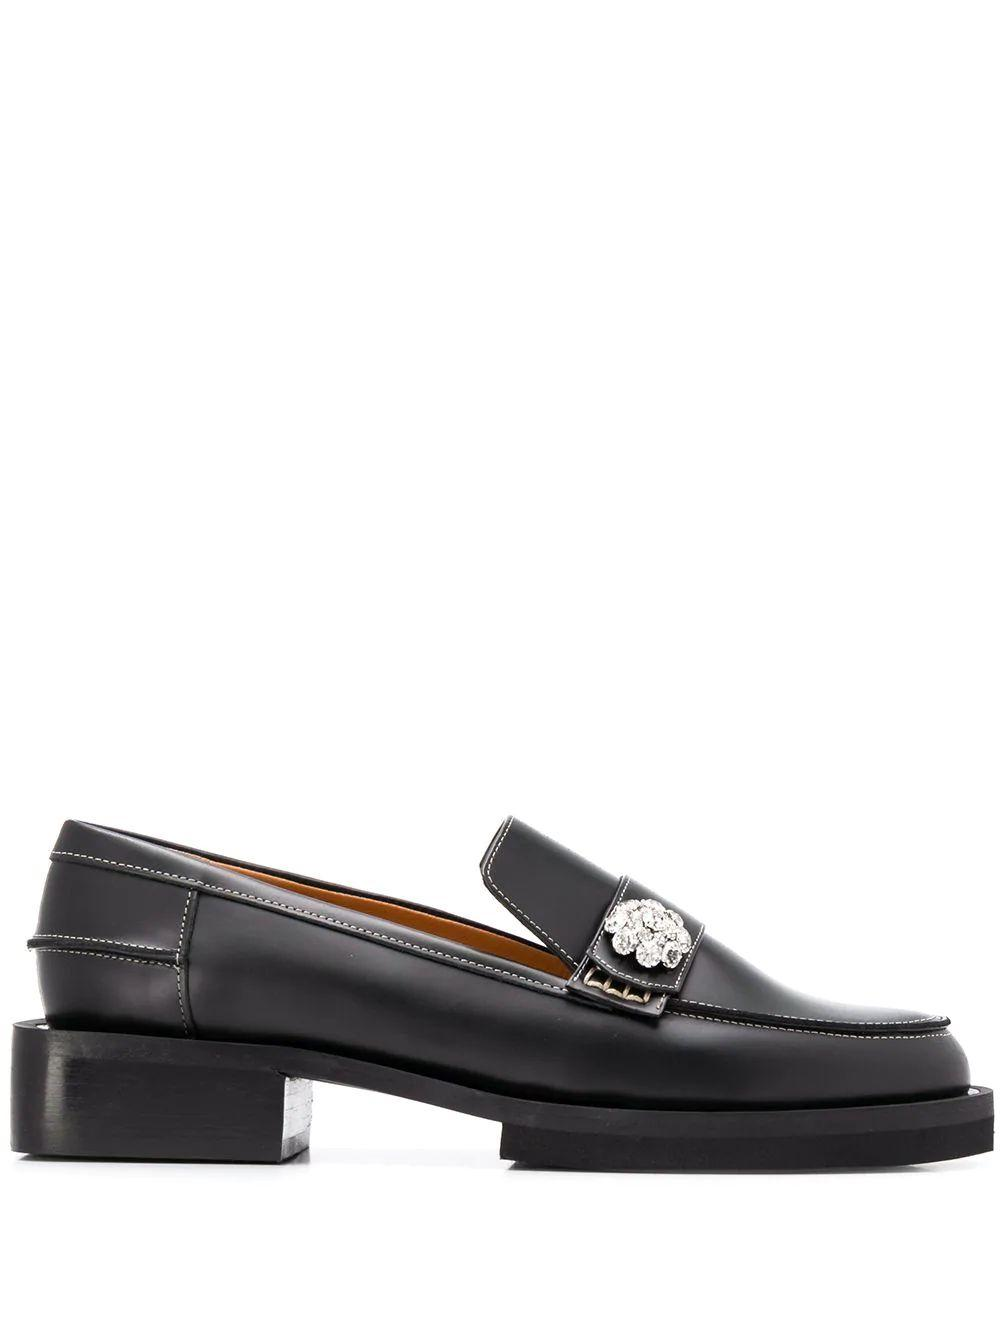 Jewel Loafer With Accent